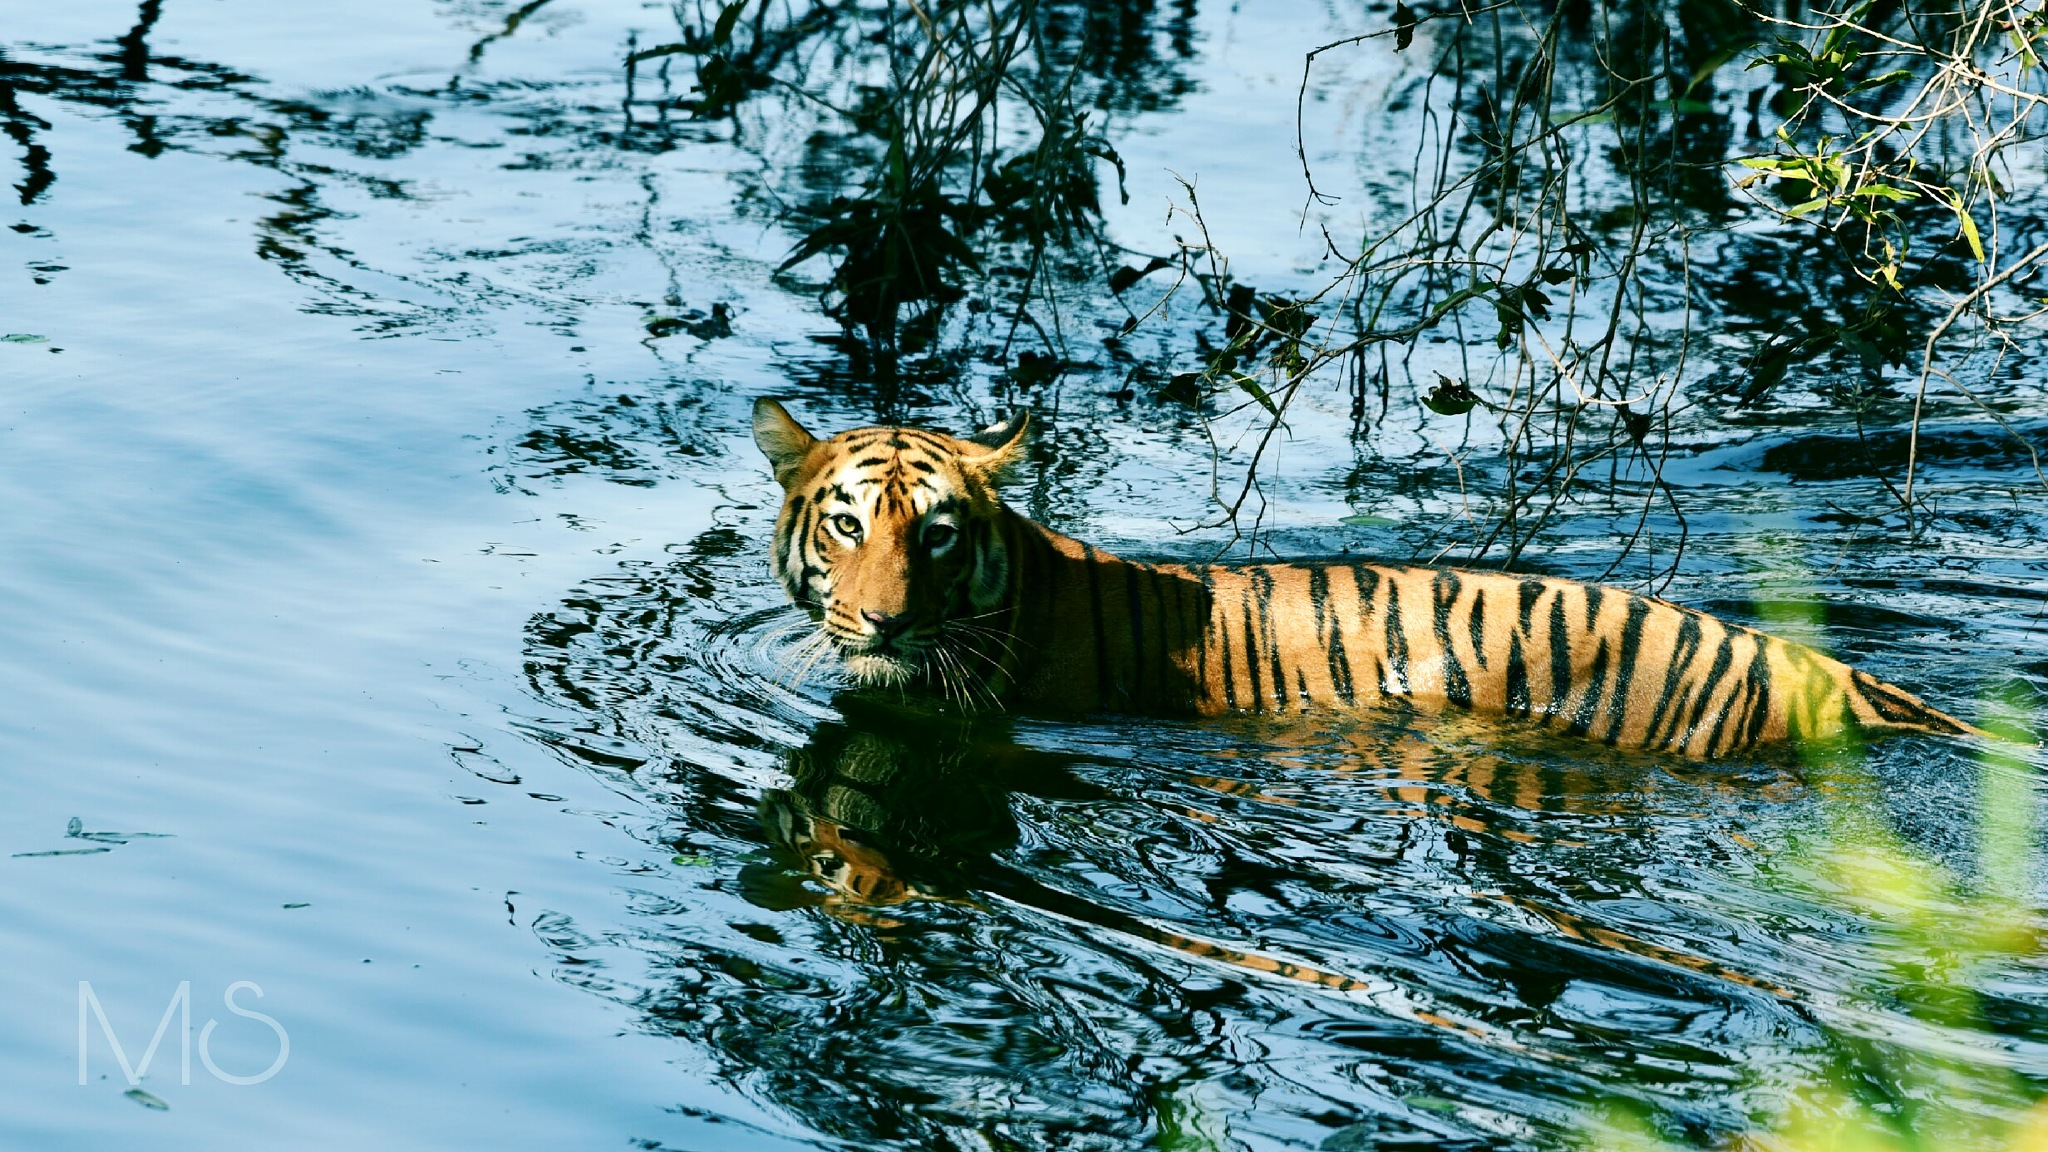 The Tiger of the blue waters by michaelstonephotography